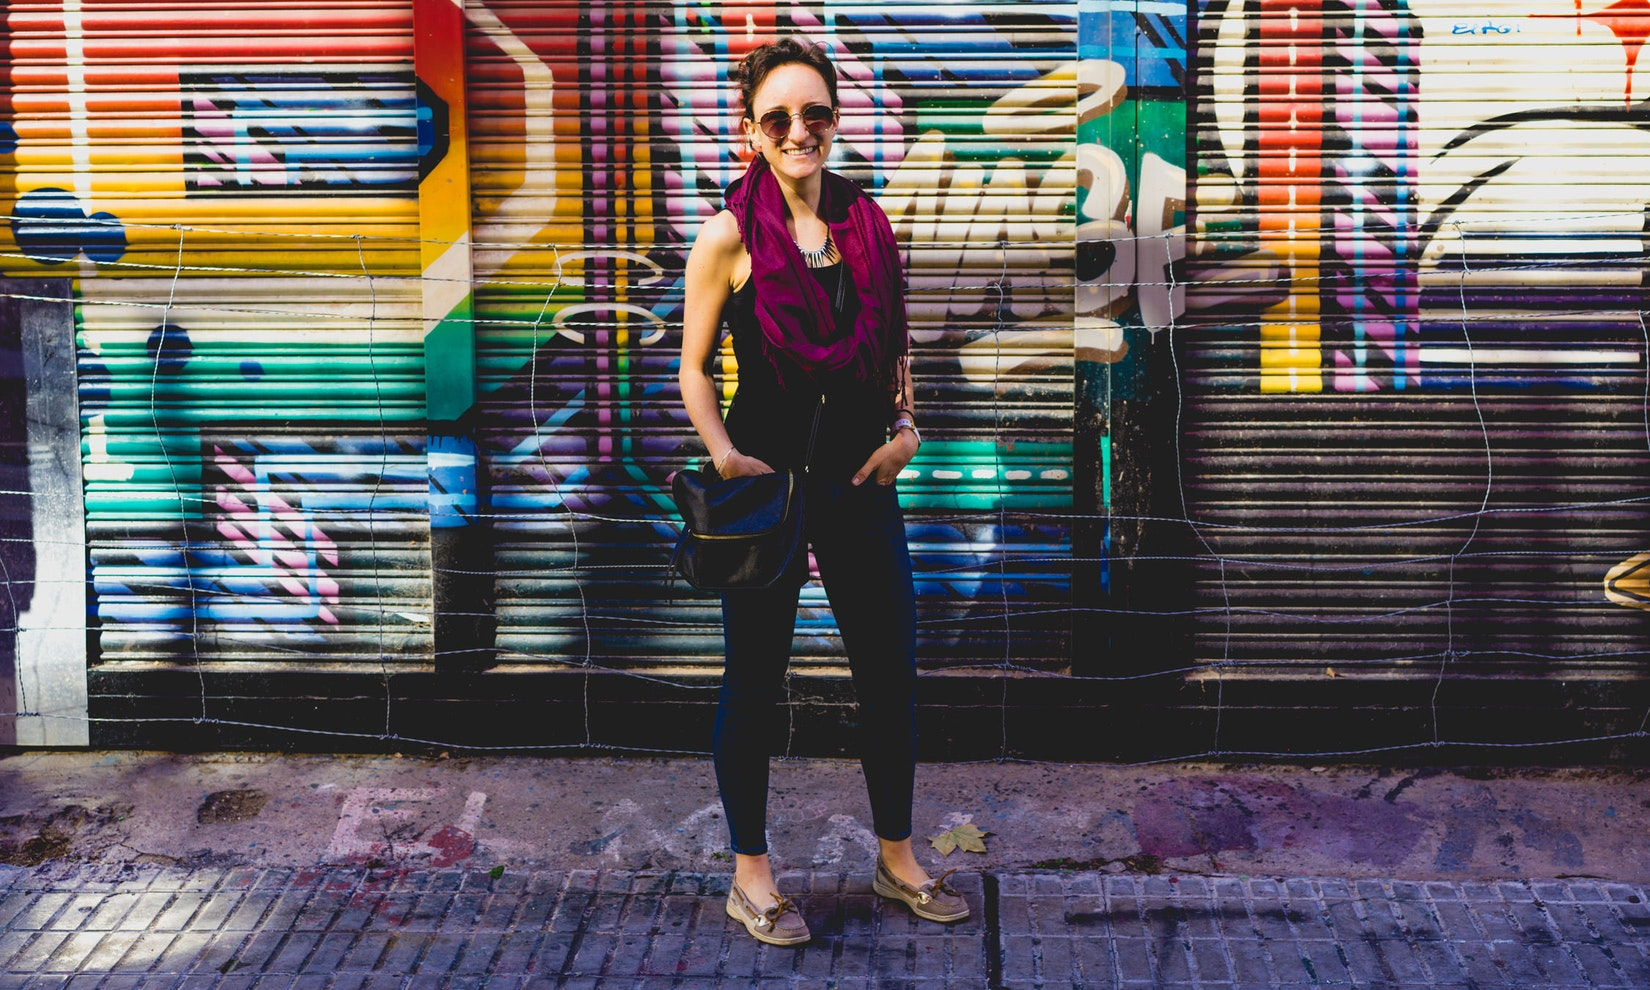 Becca in front of street art in Buenos Aires